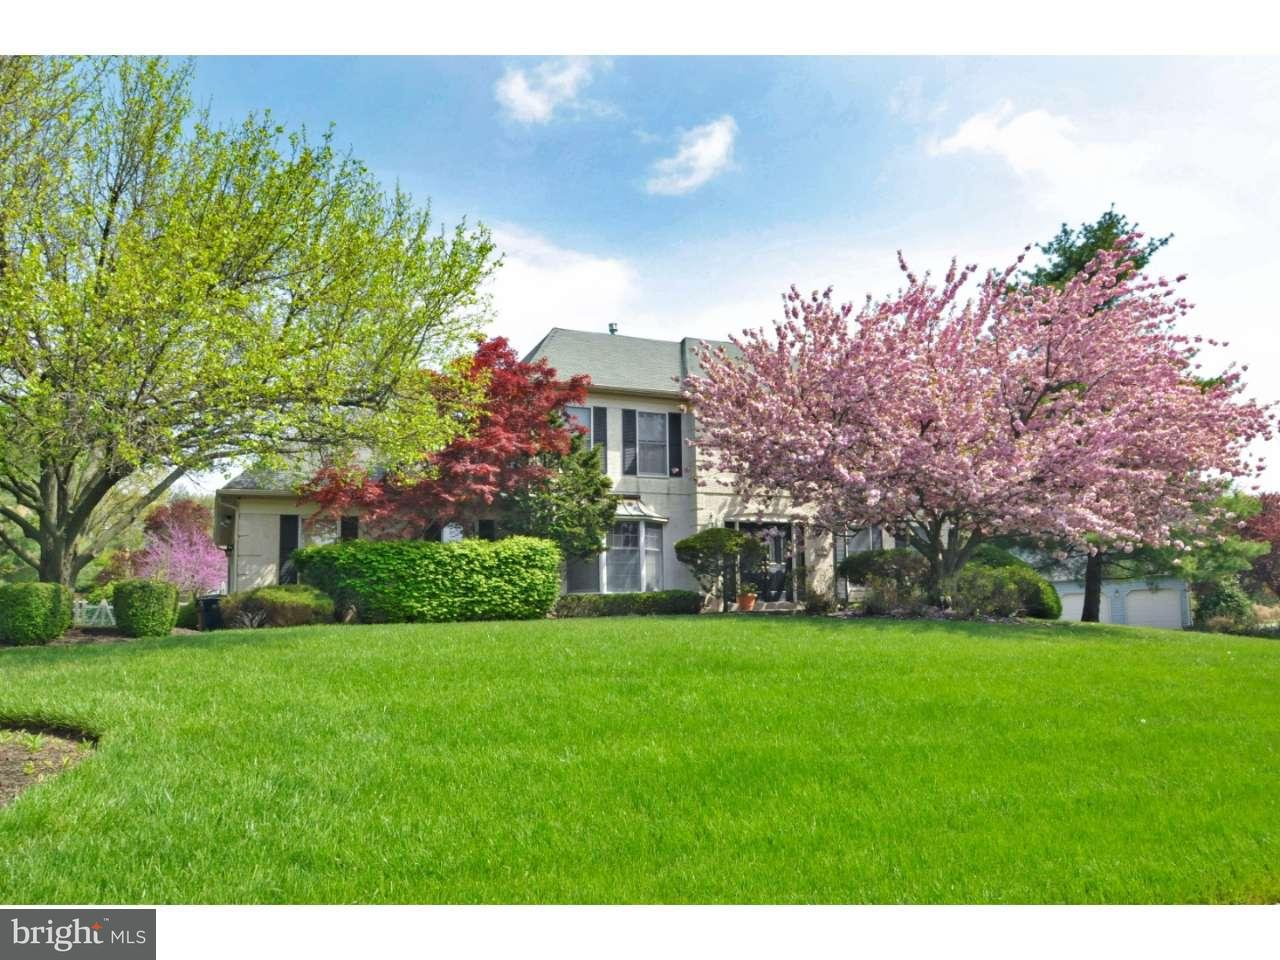 Single Family Home for Sale at 1844 BEACON HILL Drive Dresher, Pennsylvania 19025 United States